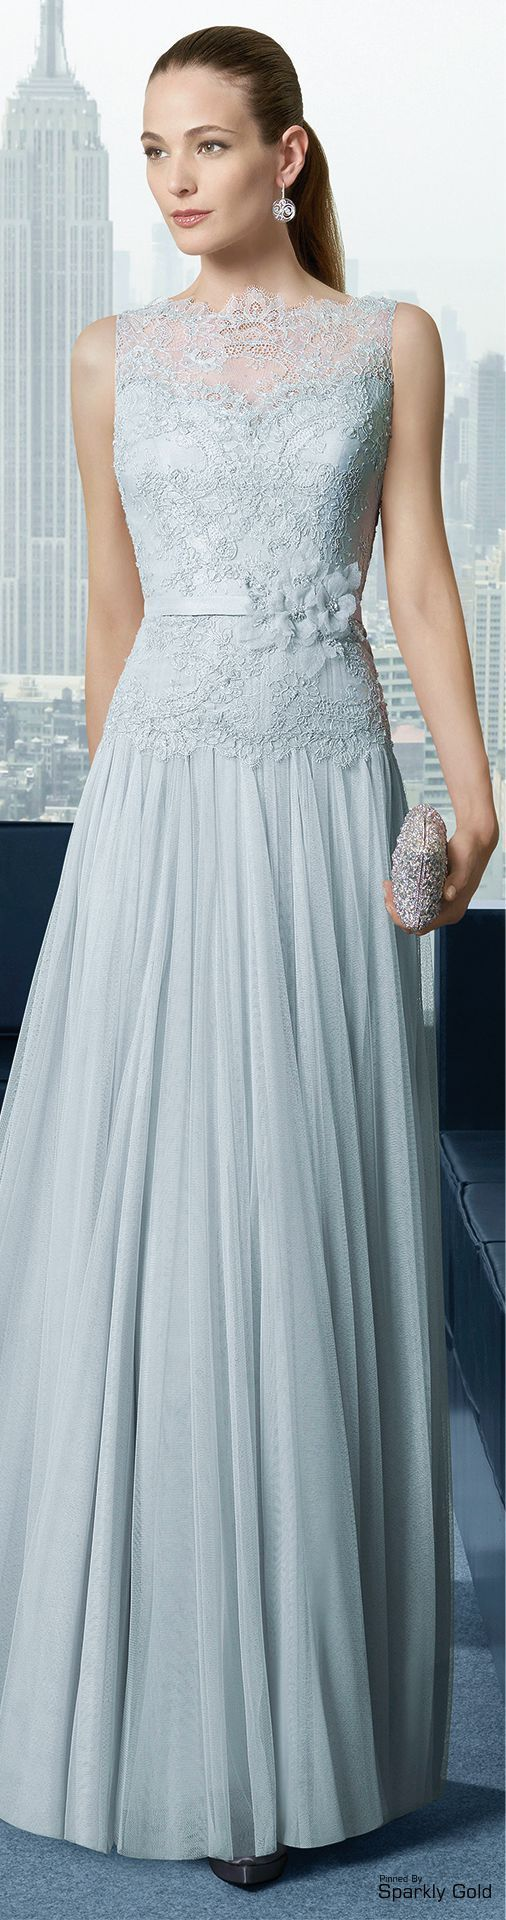 goodliness vintage formal ball gowns,vintage formal gown 2017 ...